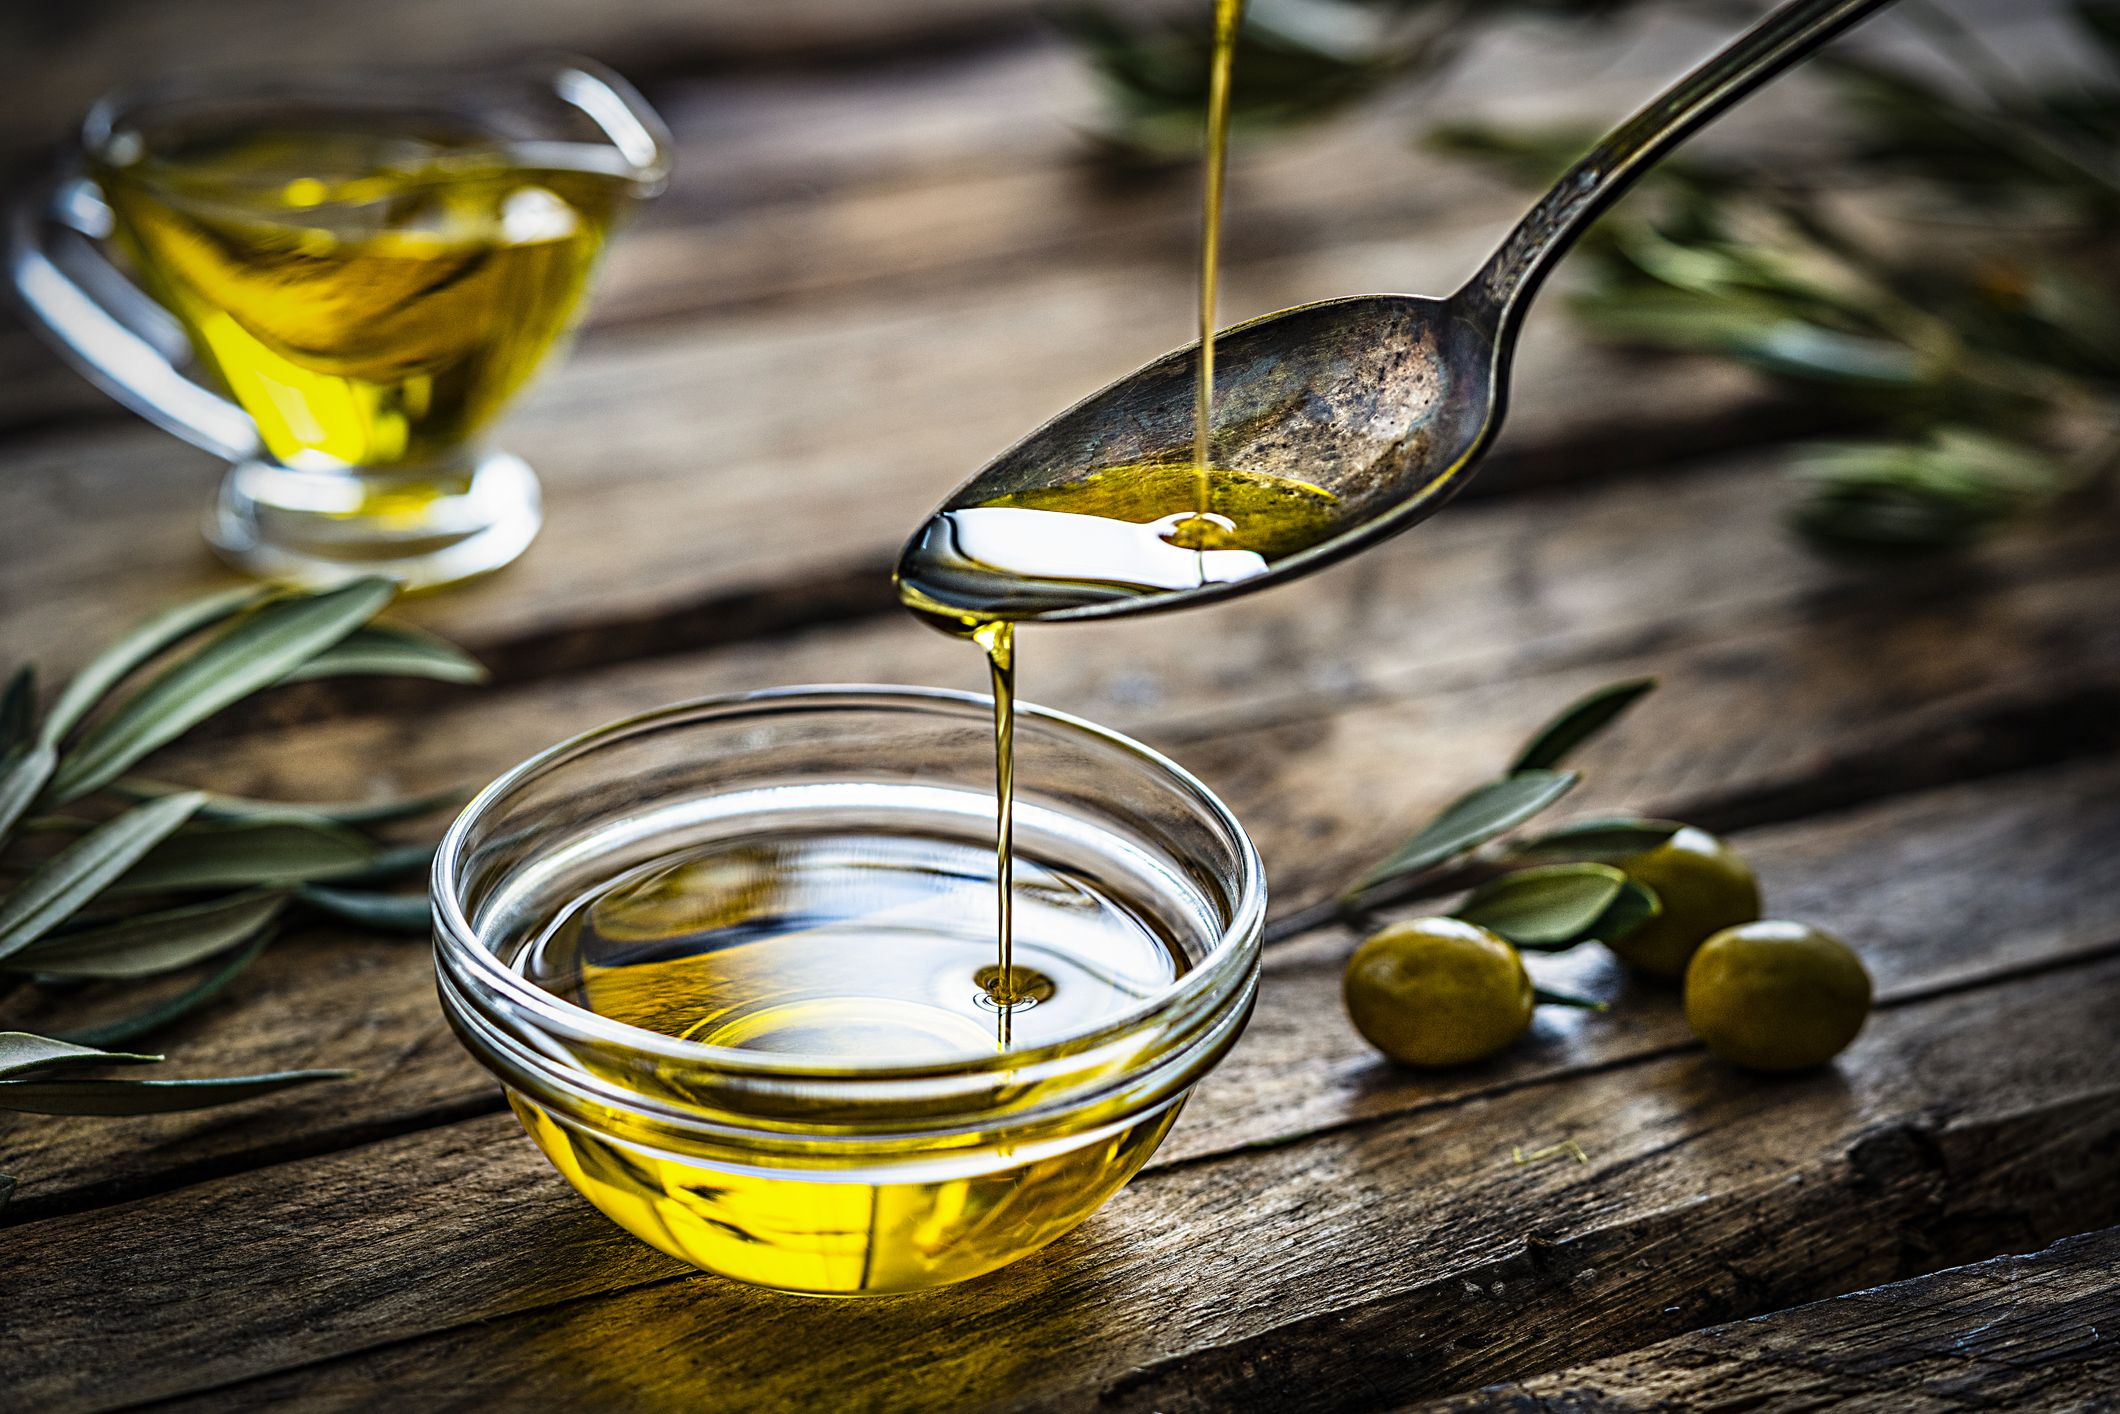 17 uses of olive oil